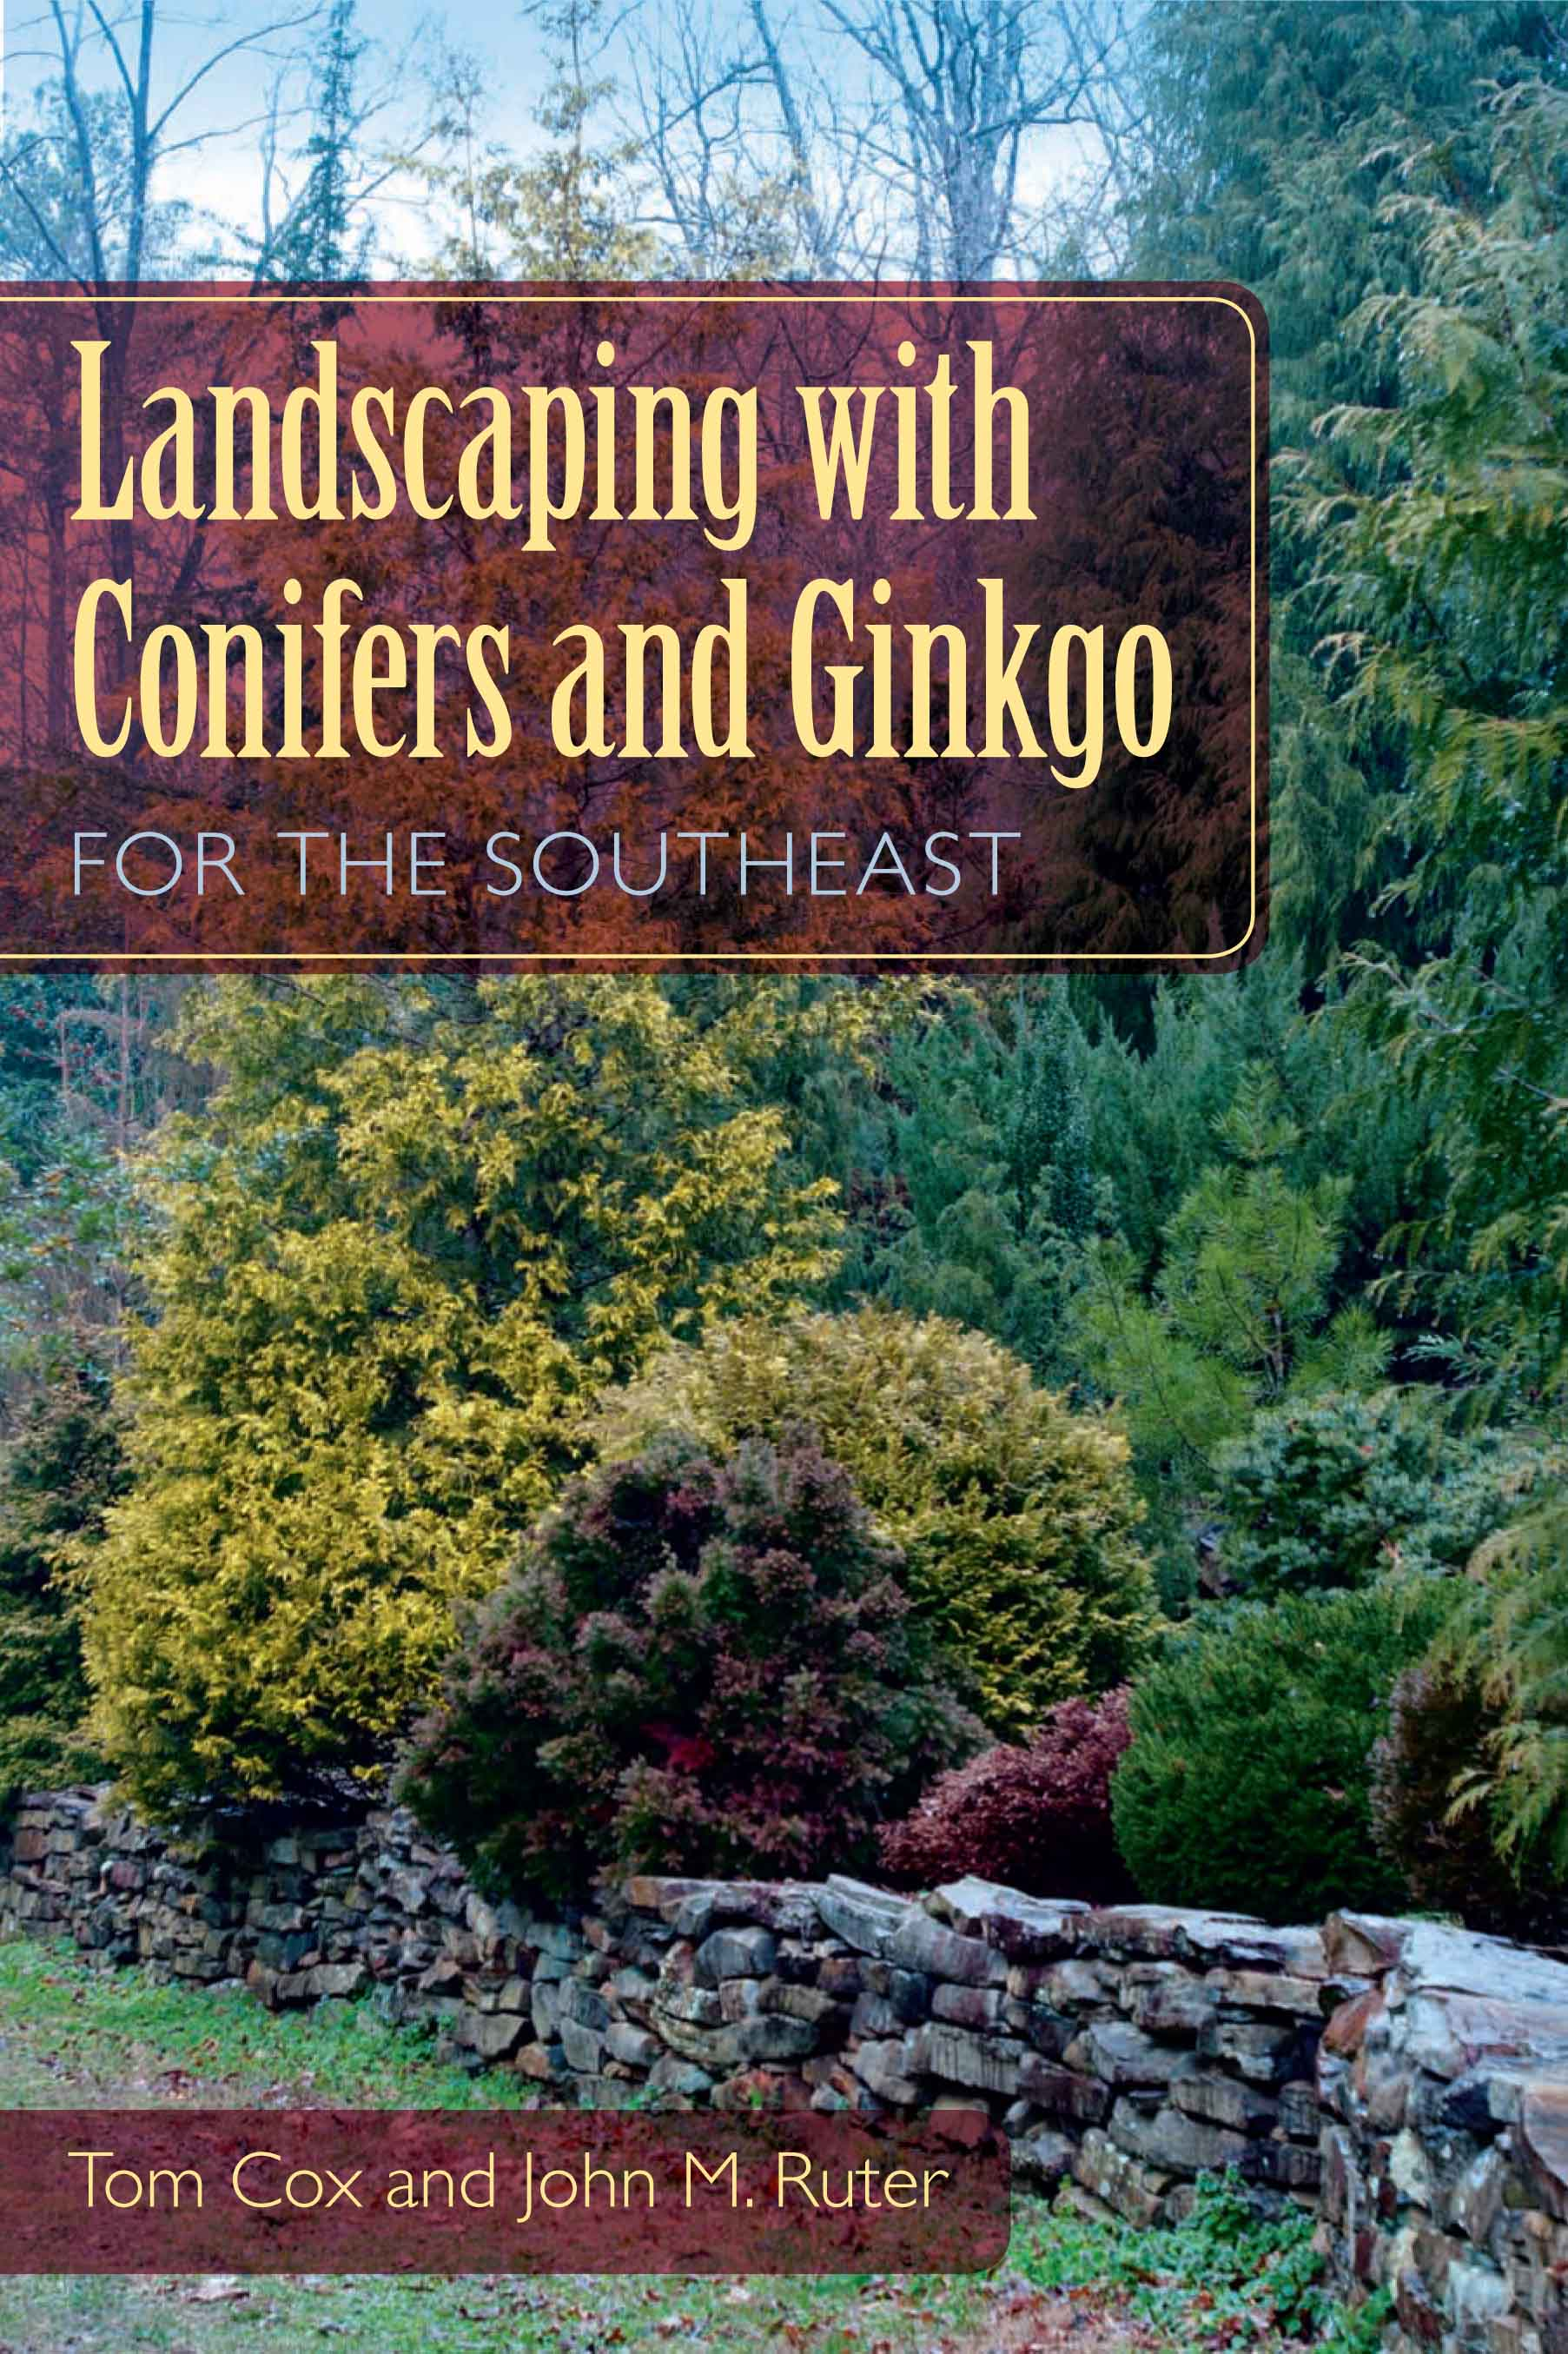 """UGA Horticulturist John Ruter's new gardening guide book """"Landscaping with Conifers and Ginkgo for the Southeast"""" will be out in April."""